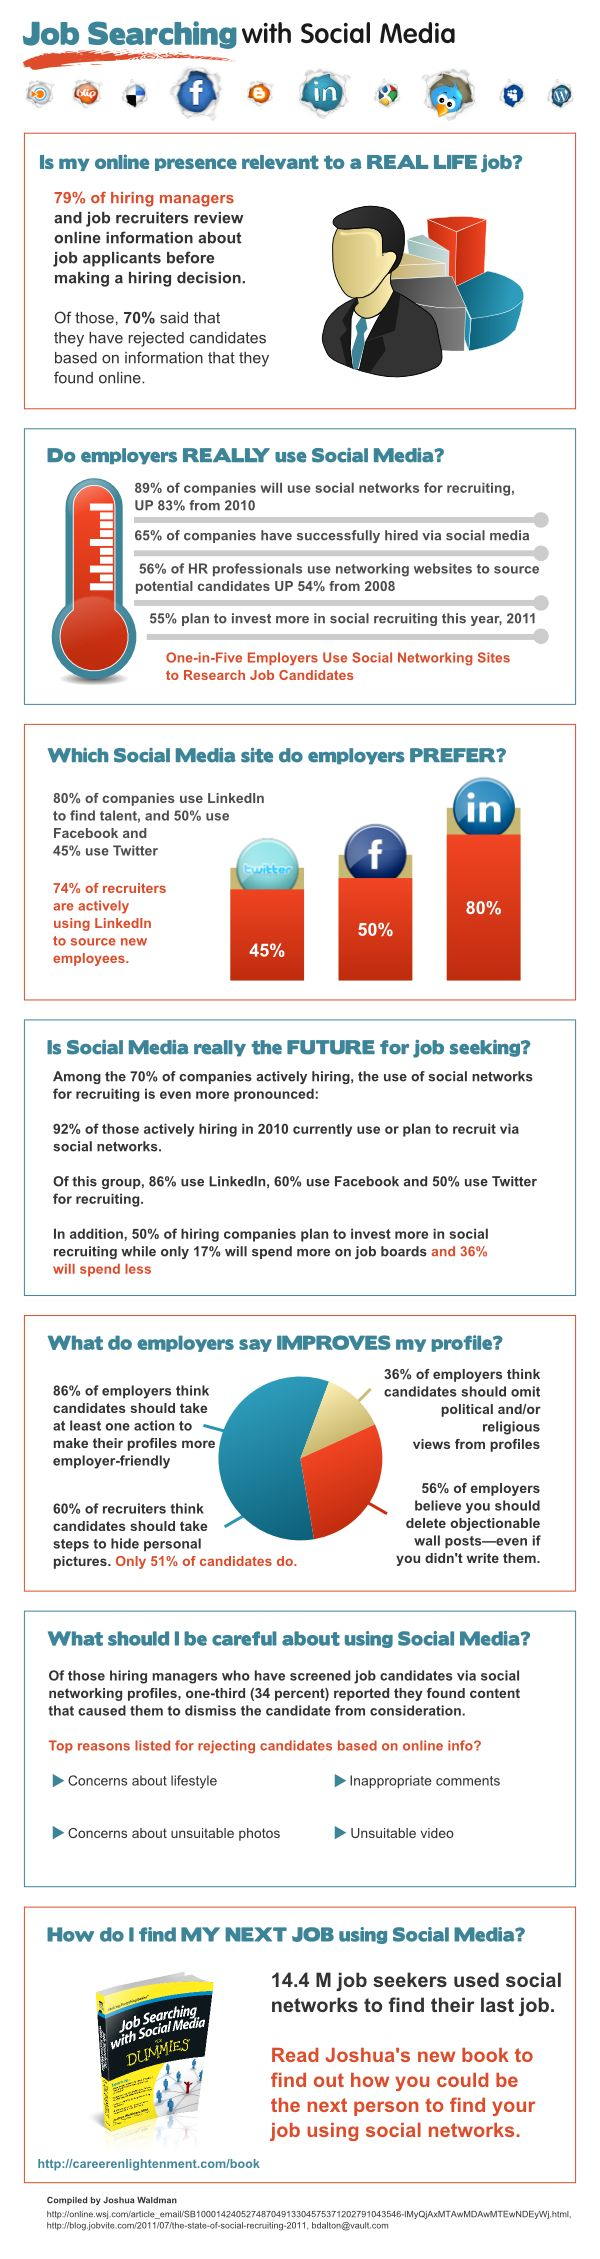 good info on job searching tips using social media  though not the best infographic from a